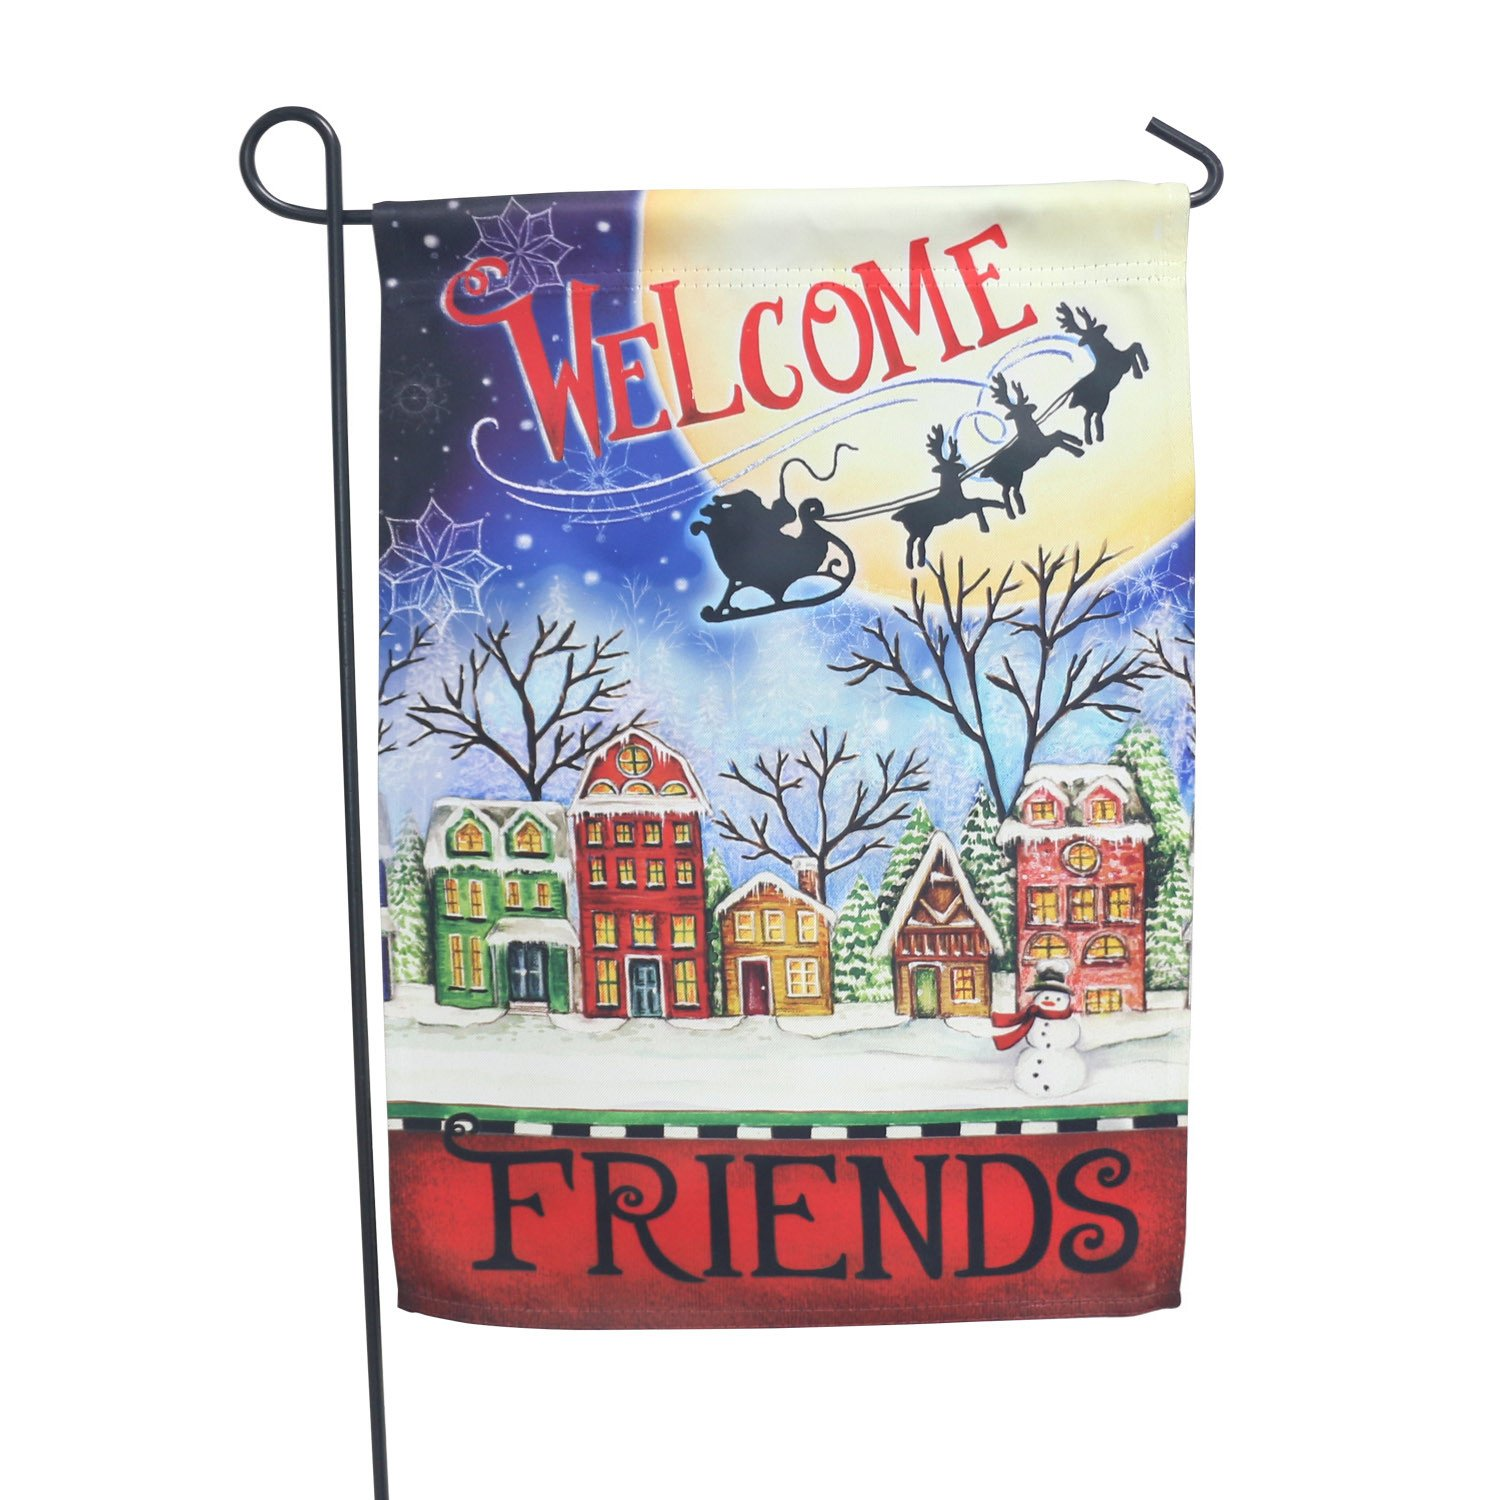 LAYOER Home Garden Flag 13 x 18 Inch House Double Sided Christmas EIK Winter Welcome Friends 12 x 18 inch